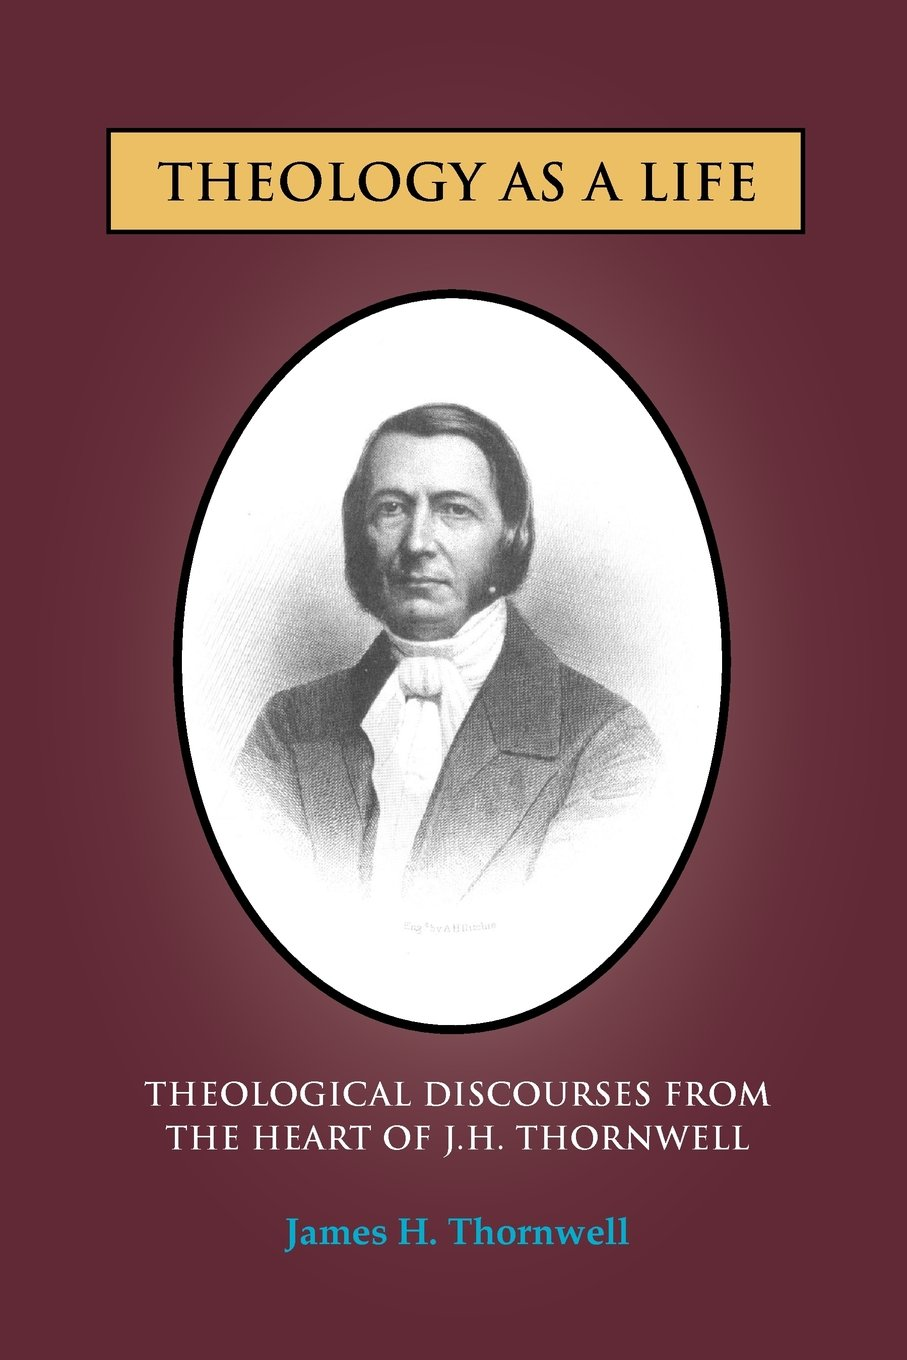 Download Theology as a Life: Theological Discourses from J.H. Thornwell pdf epub